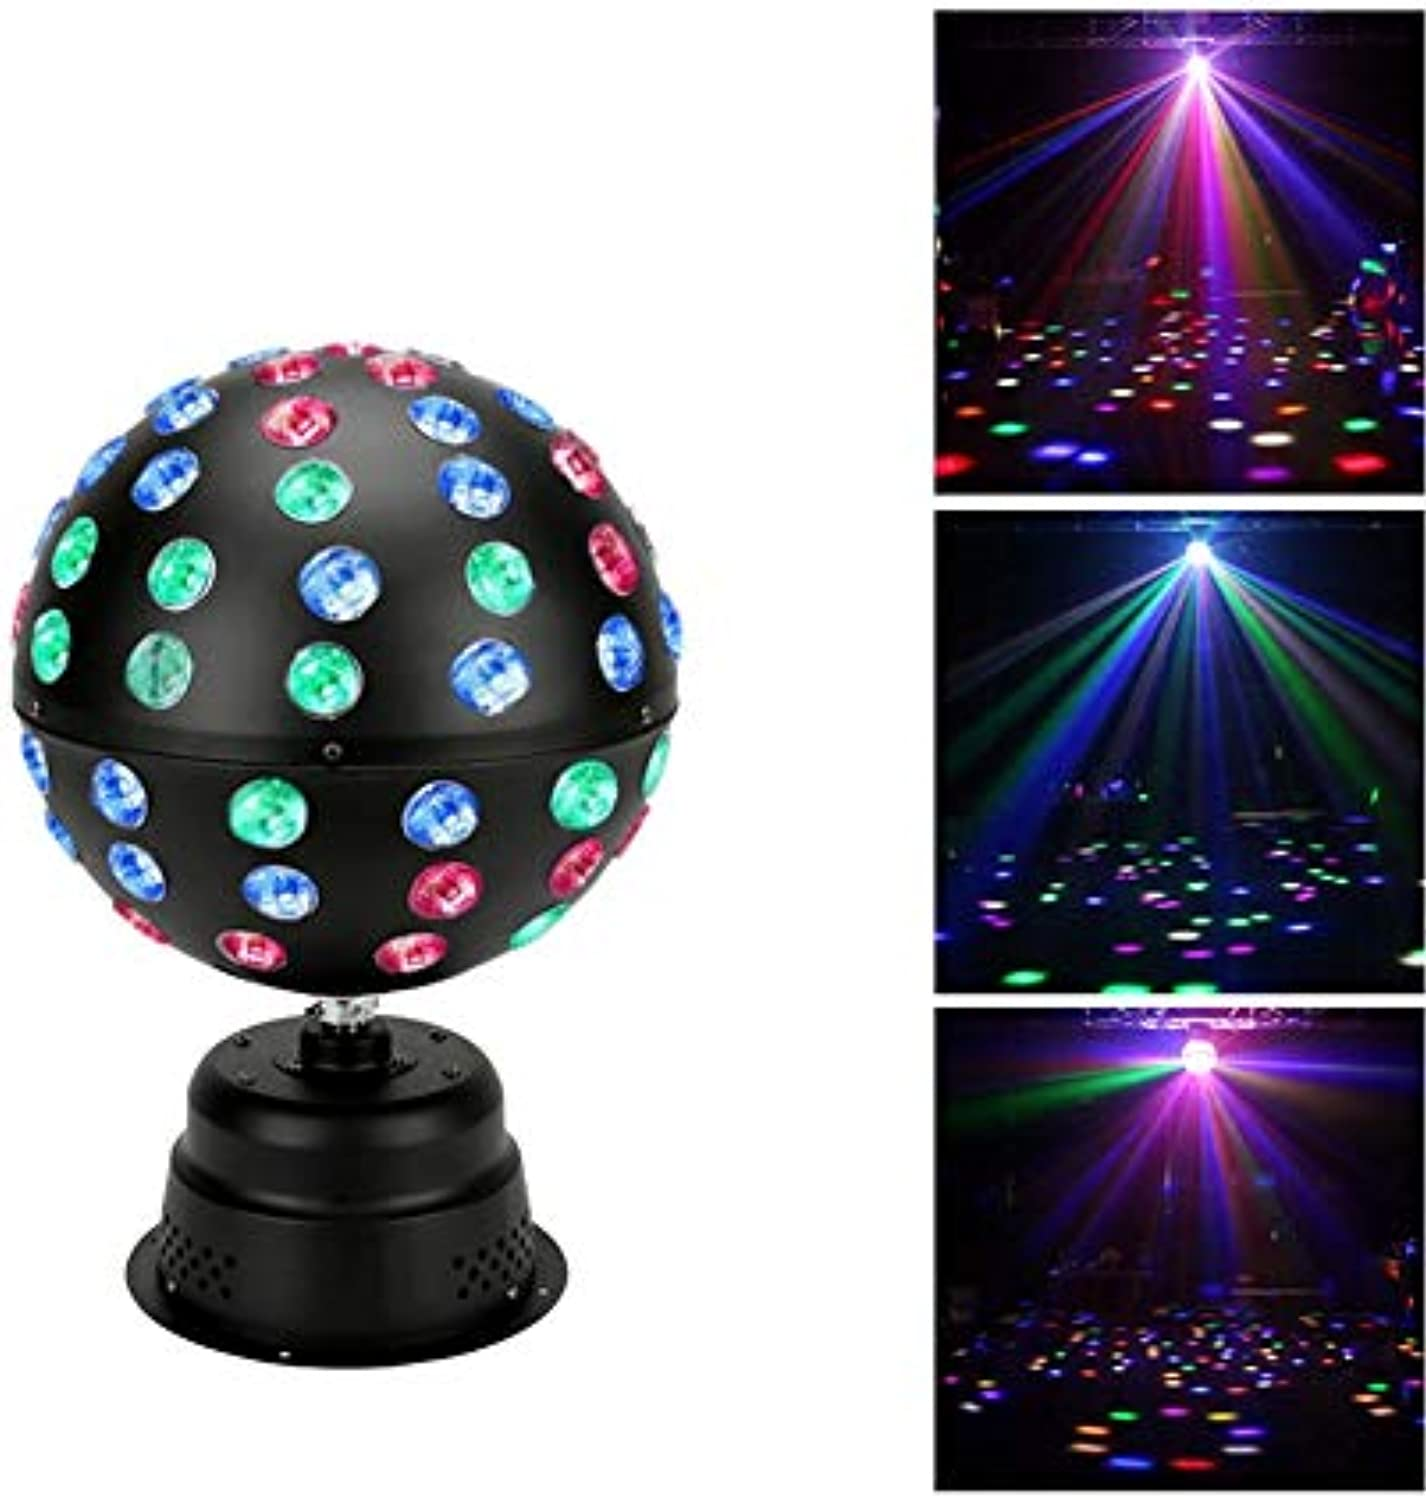 Disco Party Lights- WTD  Disco Lights Ball 18 LEDs Drehen Bühne Lichter Sound Aktivierung Party Beleuchtung RGB Kristall Magische Kugel Für Kinder Hause Geburtstagsfeier Karaoke Club Weihnachtsfest -